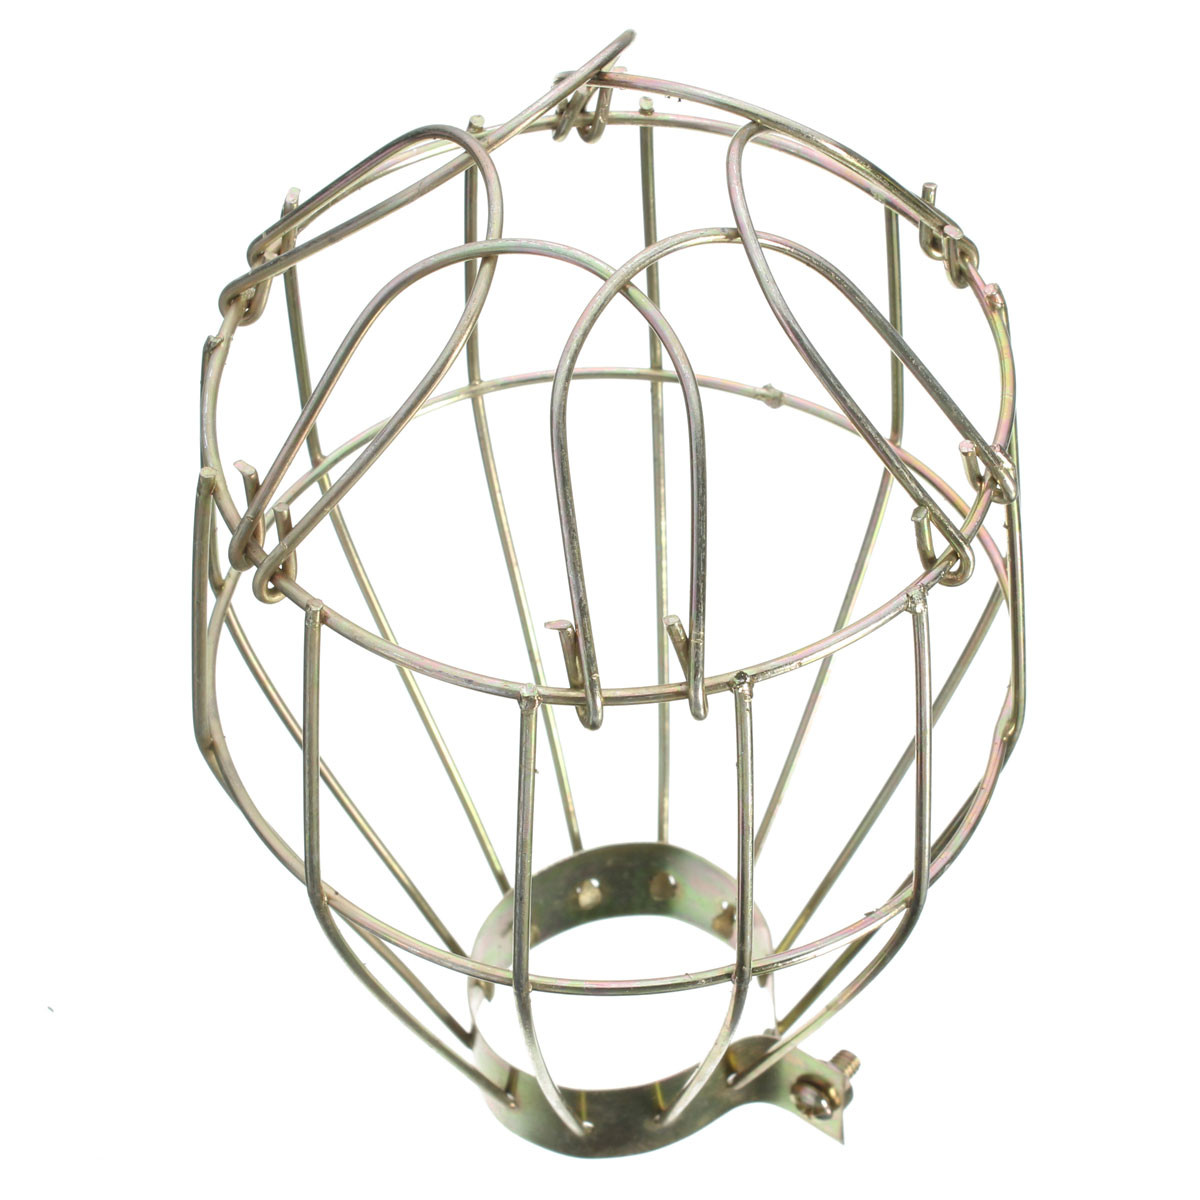 Retro Metal Bulb Guard Clamp On Metal Lamp Cage Vintage Lamp Shades Home Cafe Bar Decor